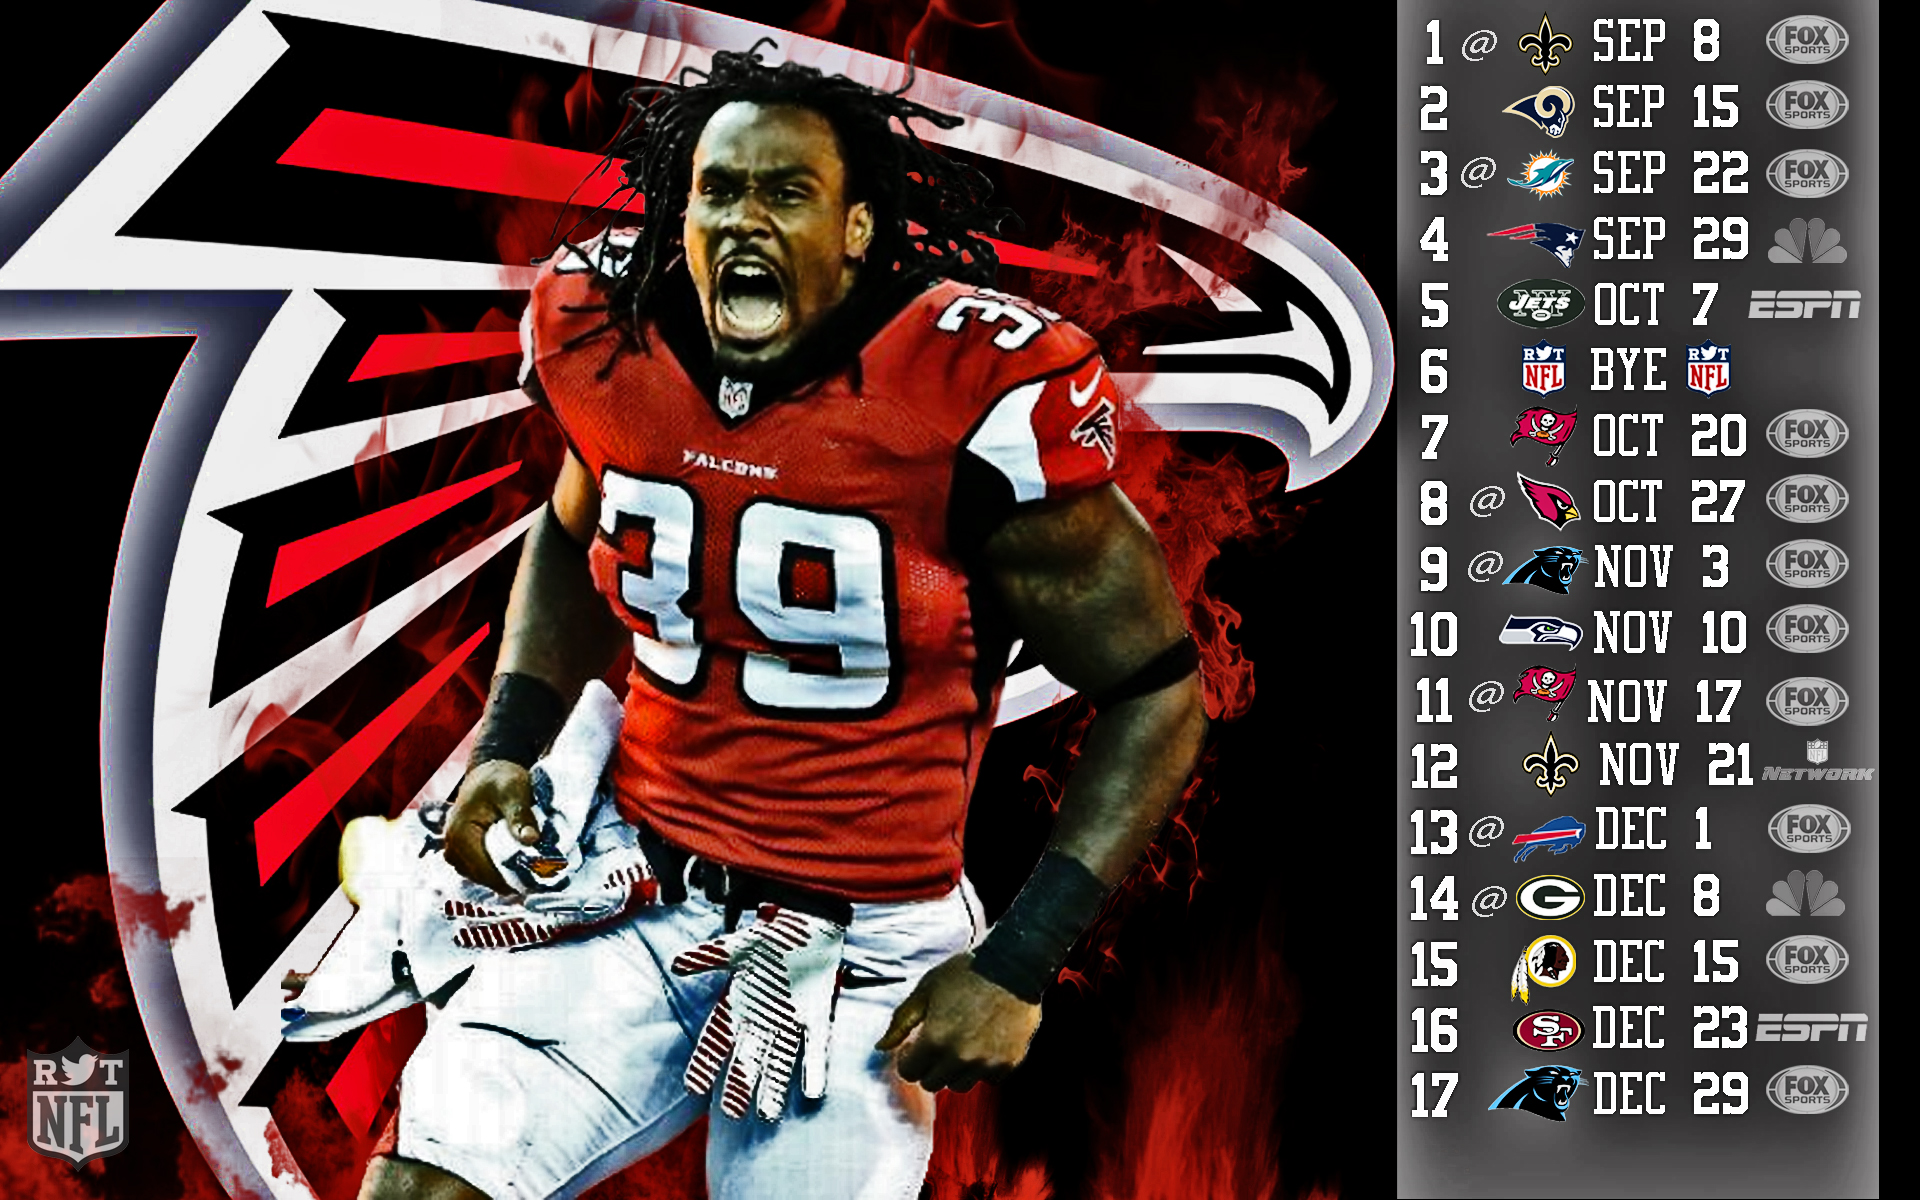 2013 Atlanta Falcons Football Nfl G Wallpaper